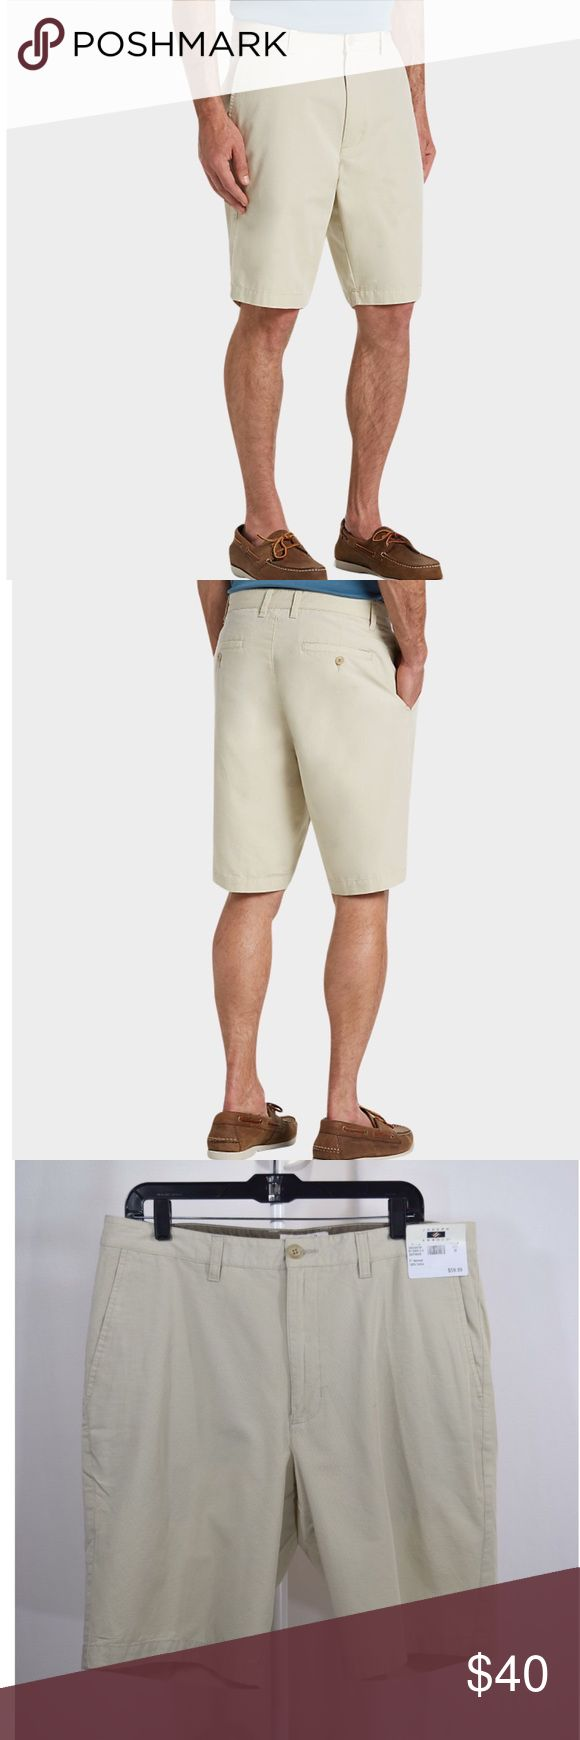 """NWT Men's Joseph Abboud Tan Modern Fit Shorts Men's Joseph Abboud Shorts🔹Light Tan🔹Brand new with tags🔹Modern Fit🔹100% cotton🔹Flat Front🔹Modern Fit🔹Inseam is 10""""🔹Size 36🔹Smoke and pet free home Joseph Abboud Shorts Flat Front"""